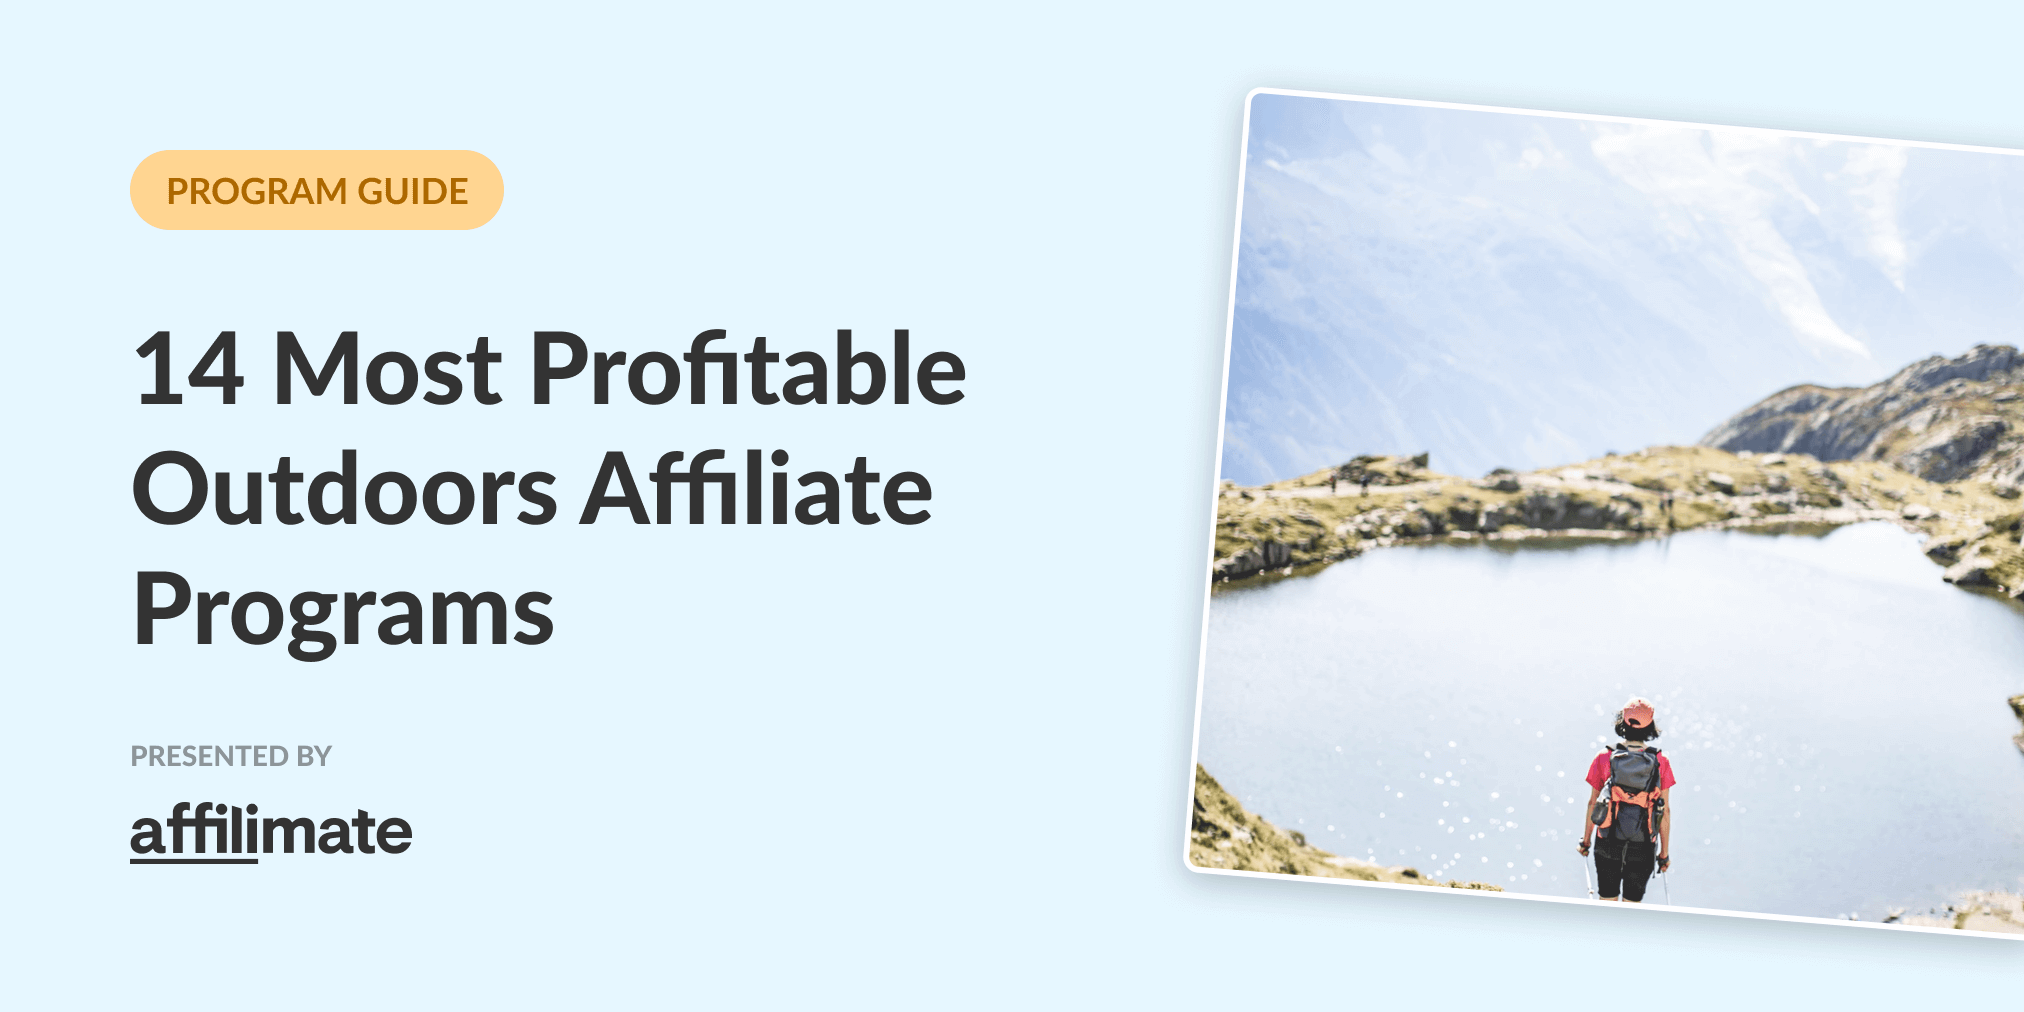 14 Best Outdoor Affiliate Programs in 2021 (Based on Data)